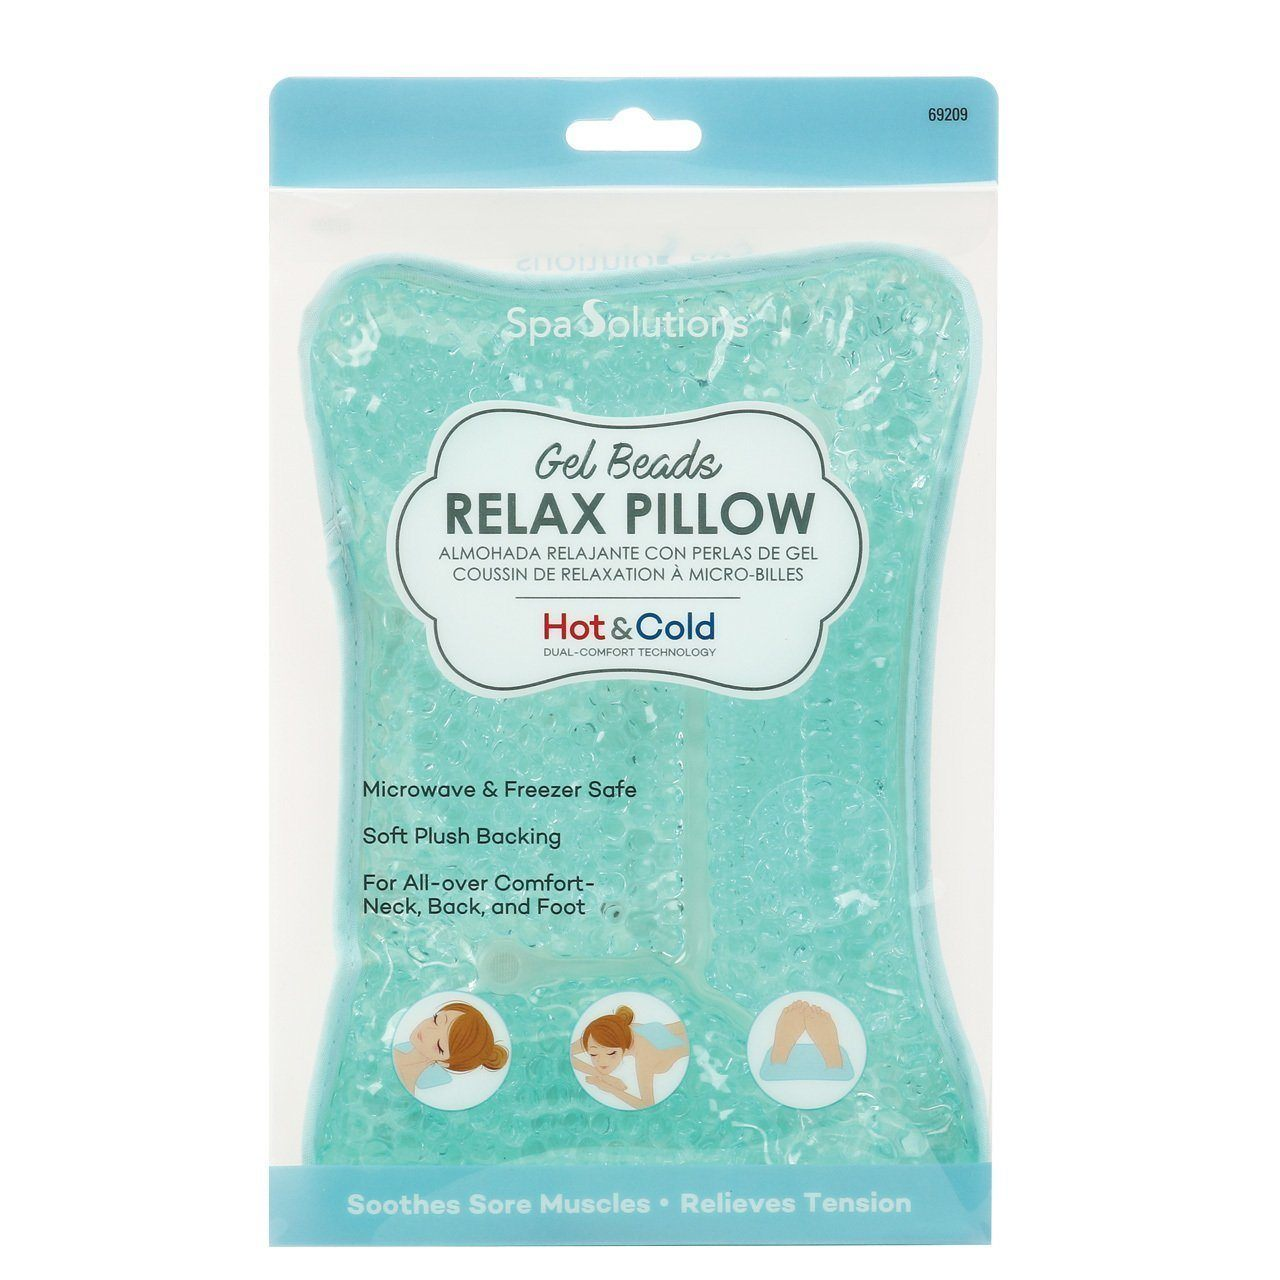 Cala Gel Beads Relax Pillow #69209